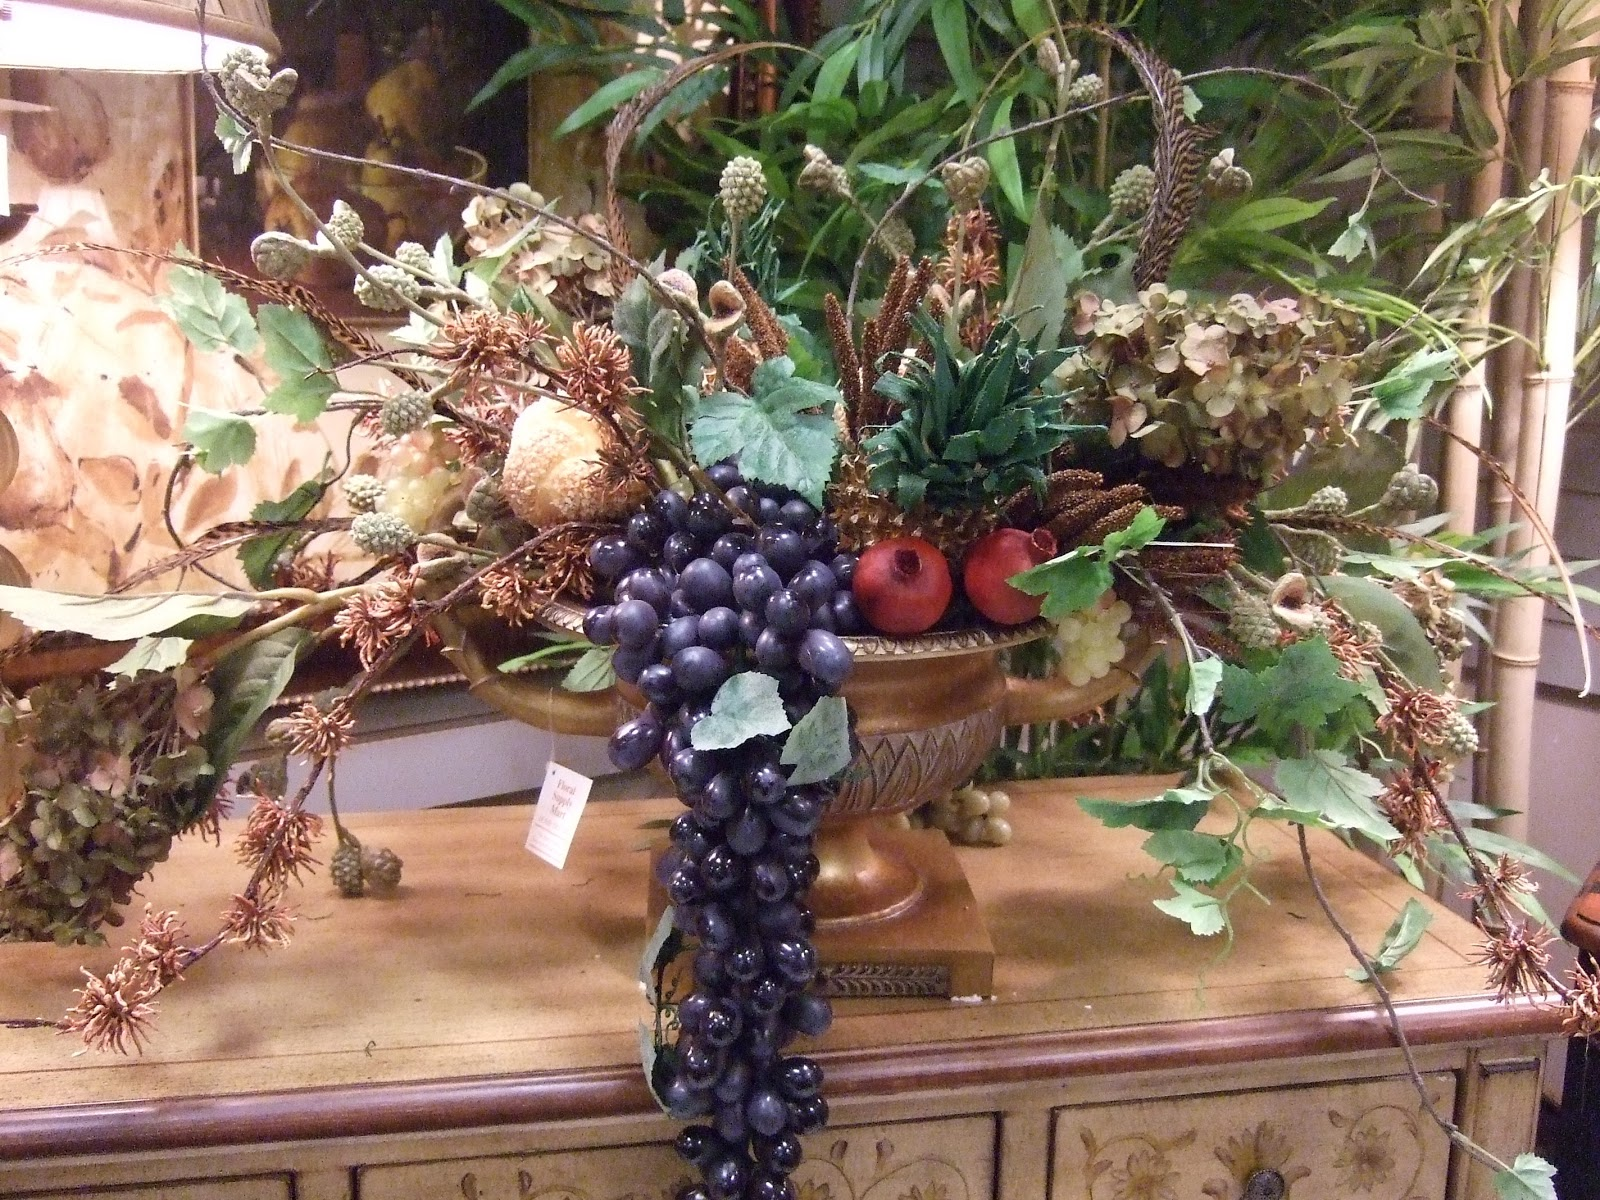 Ana Silk Flowers How to Use Fruit in Artificial Floral Arrangements